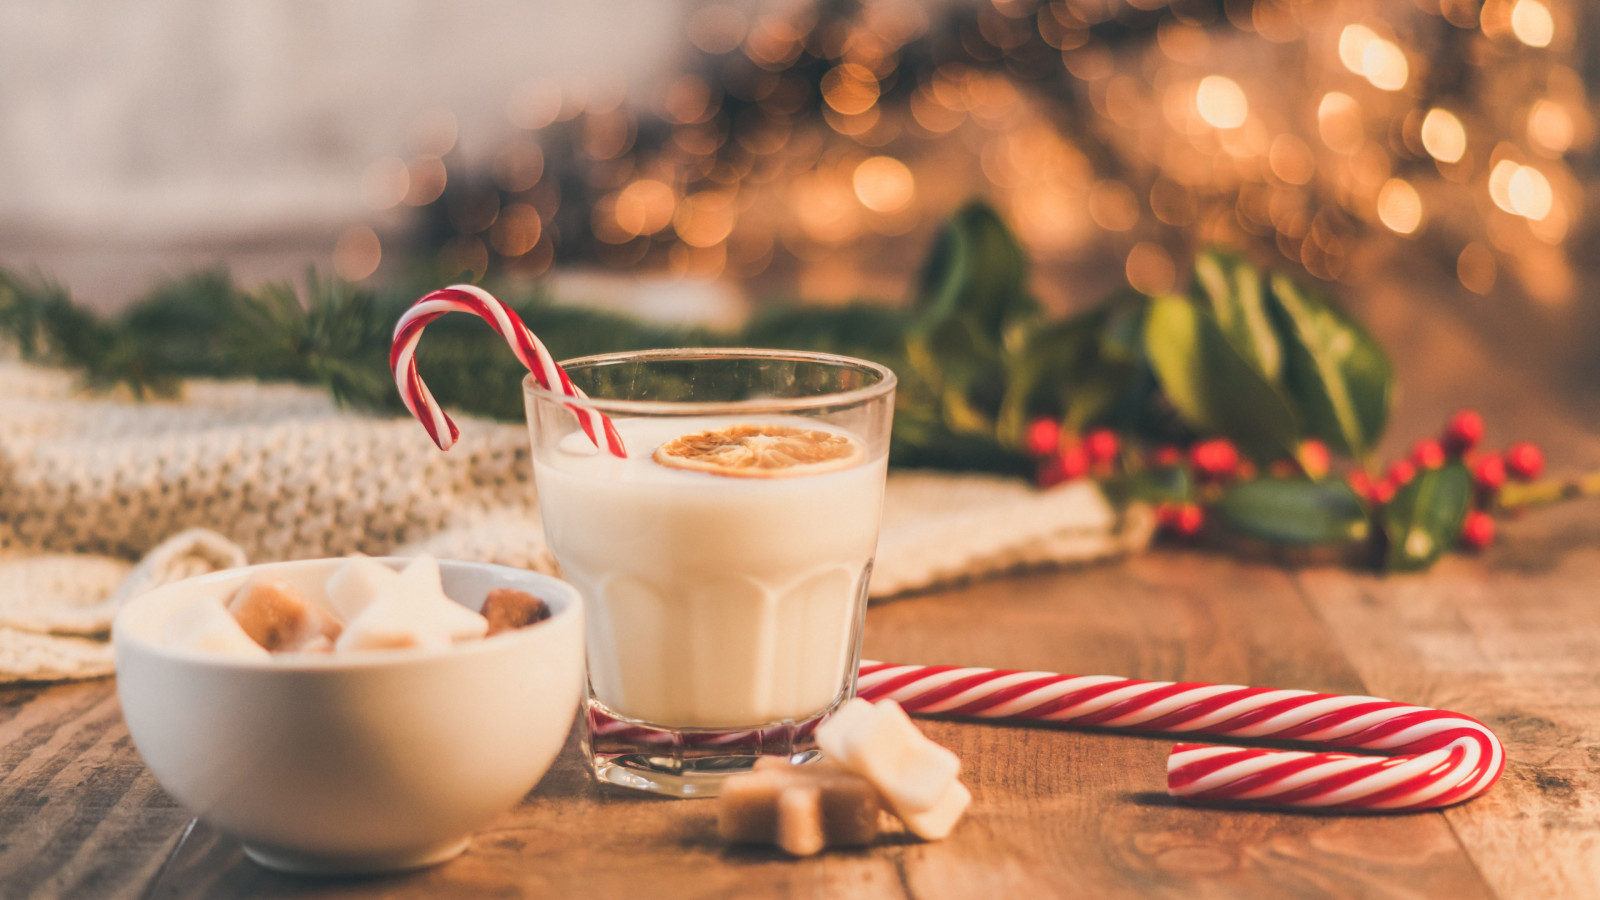 Seasonal Christmas sweets and cup of milk wallpaper 1600x900